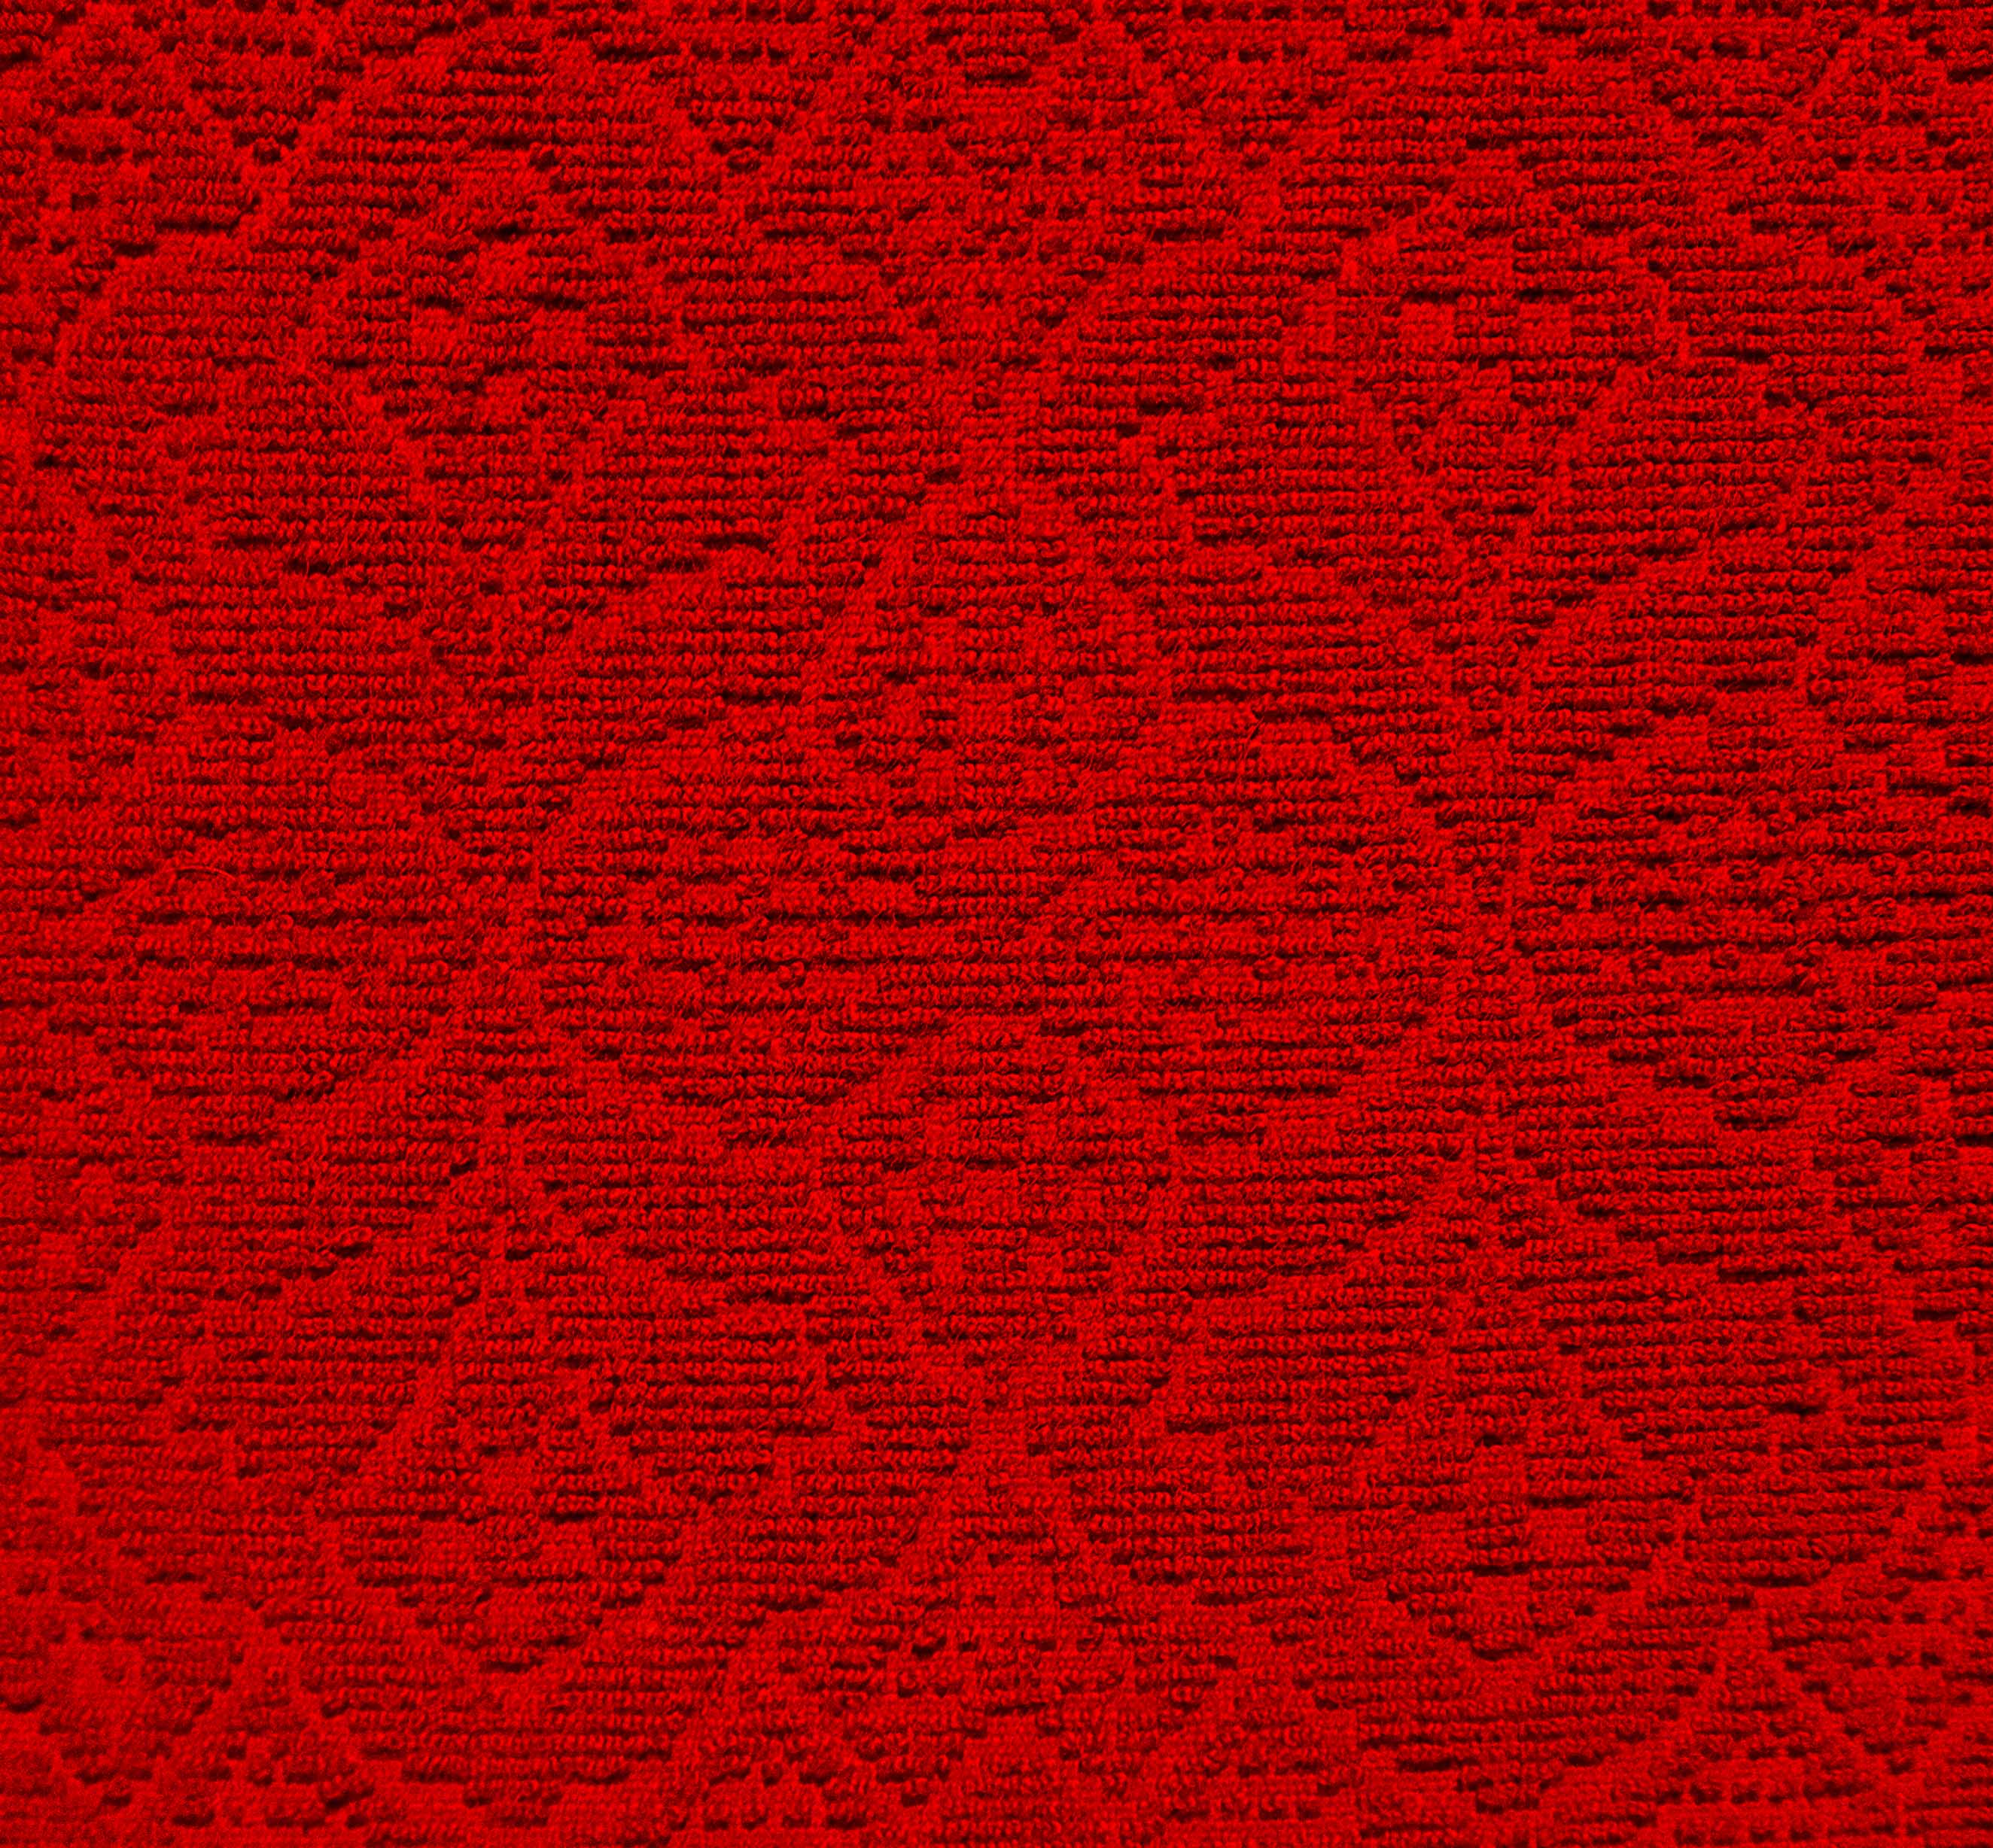 Red Fabric Pattern Free Texture